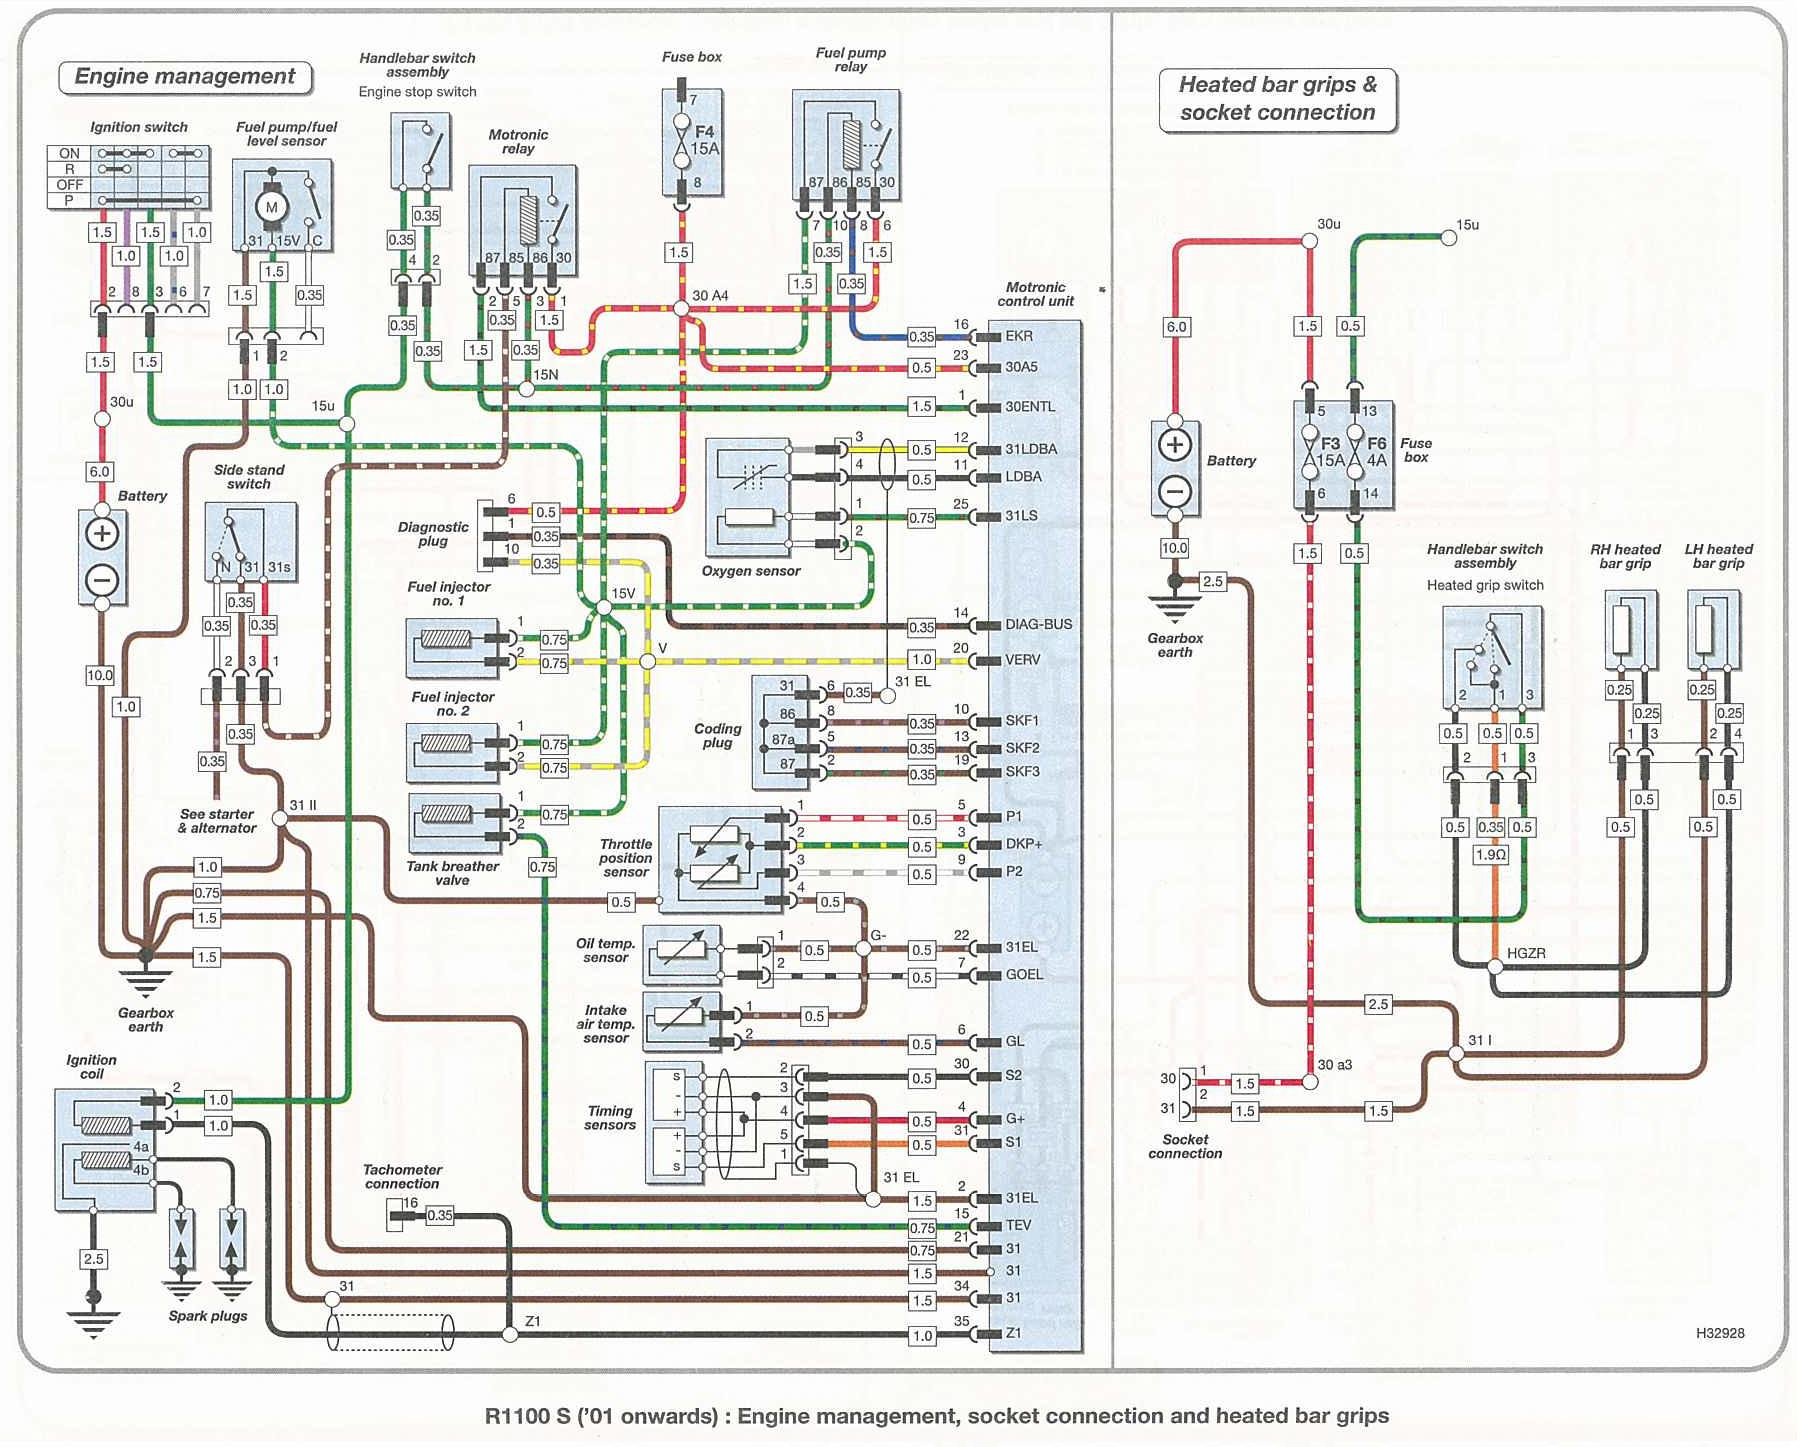 wiring07 bmw r1100s wiring diagrams 2000 cbr 600 f4 wiring diagram at crackthecode.co